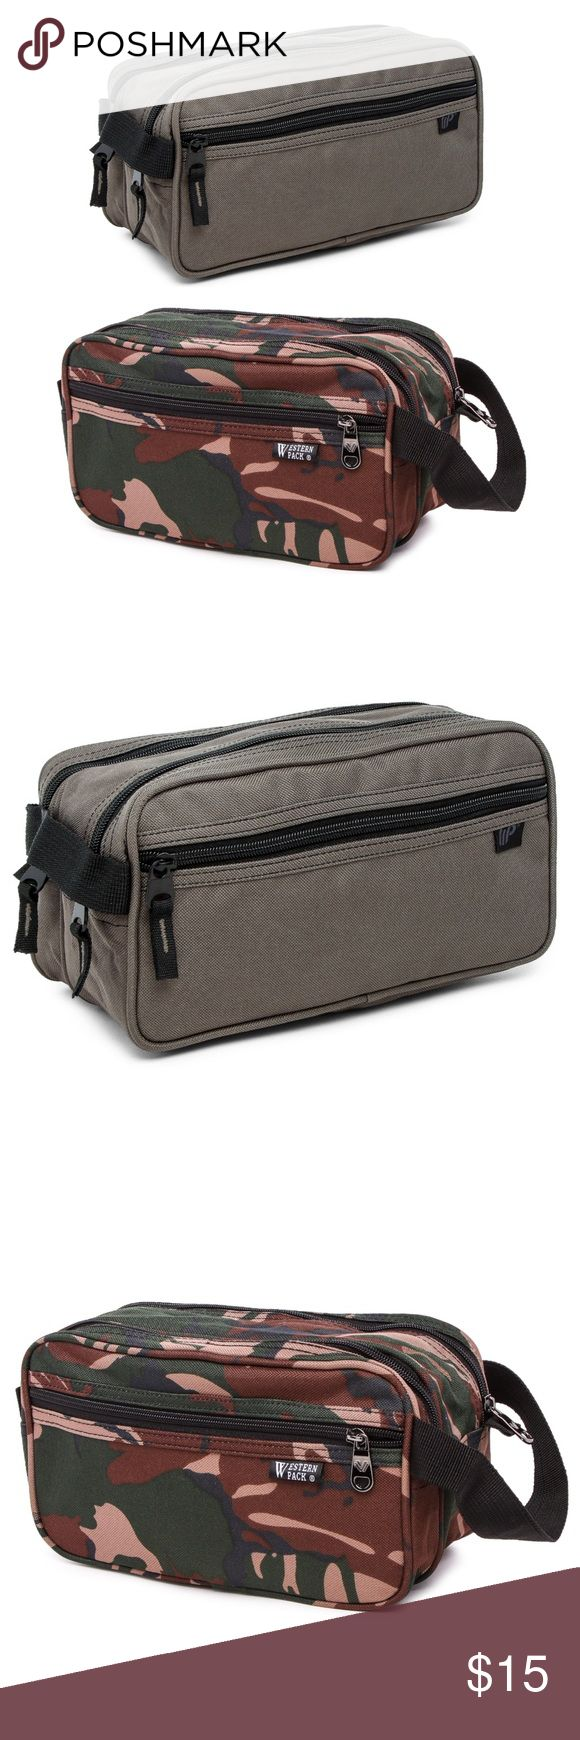 """Men's Toiletry Bag Men's Toiletry Bag by Western Pack  Color: Olive or Camo  Measures: 4""""L x 11""""W x 5.5""""H  Features: Two main zip closures Two side zip pouches Water Resistant Handle for easy carrying Lots of space Imported Bags Luggage & Travel Bags"""